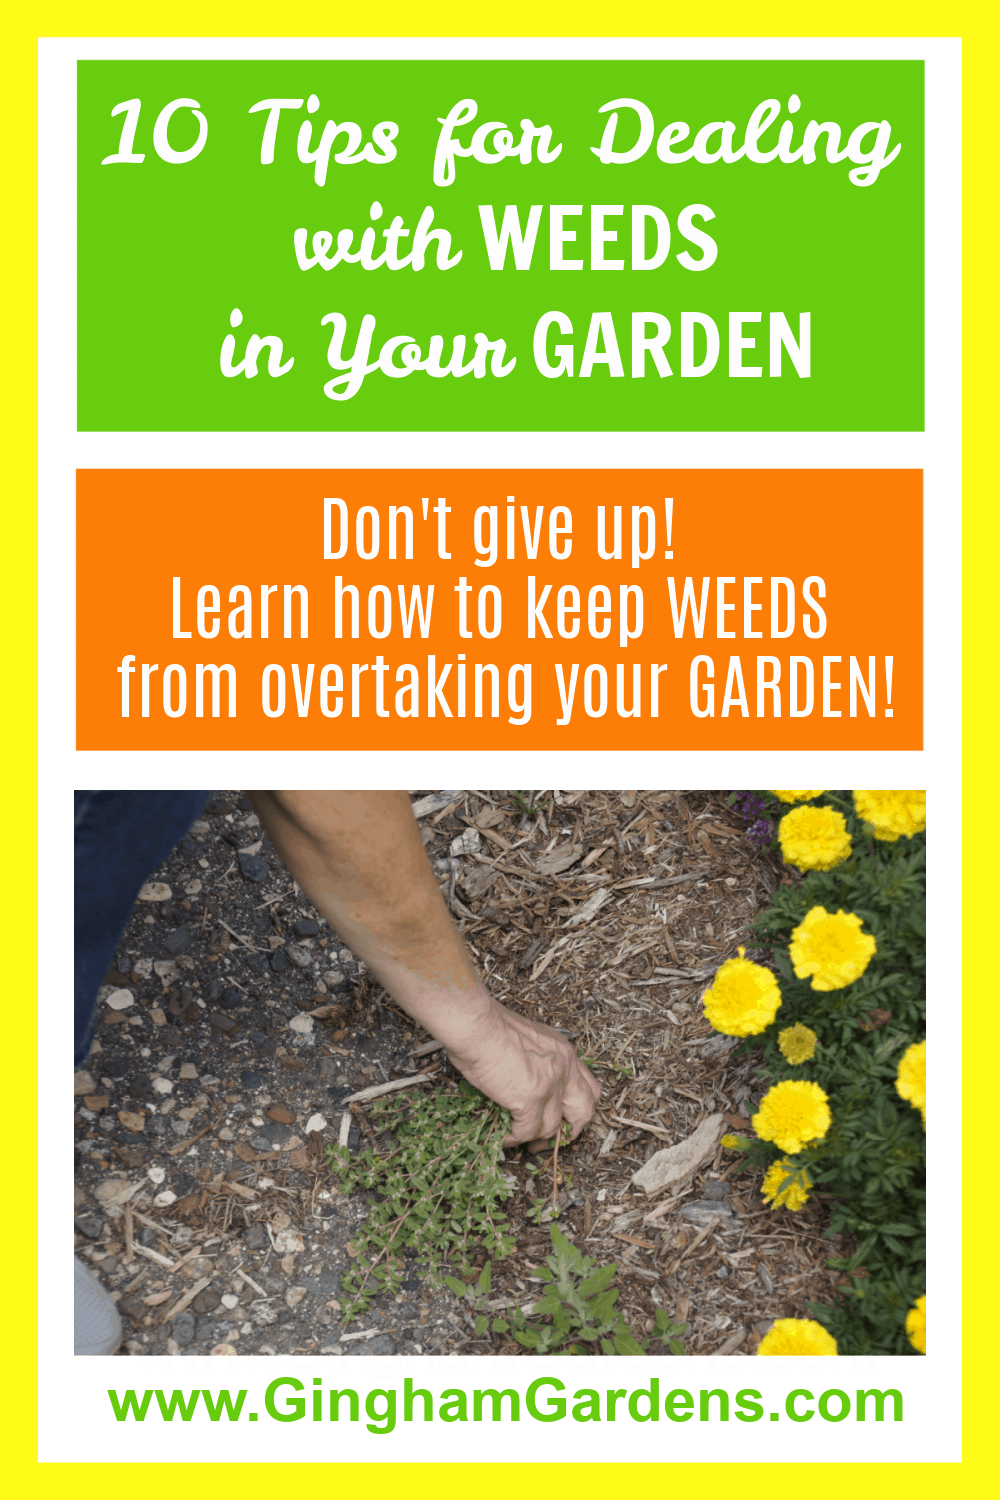 Image of Gardener pulling weeds with text overlay - How to Deal with Weeds in Your Garden